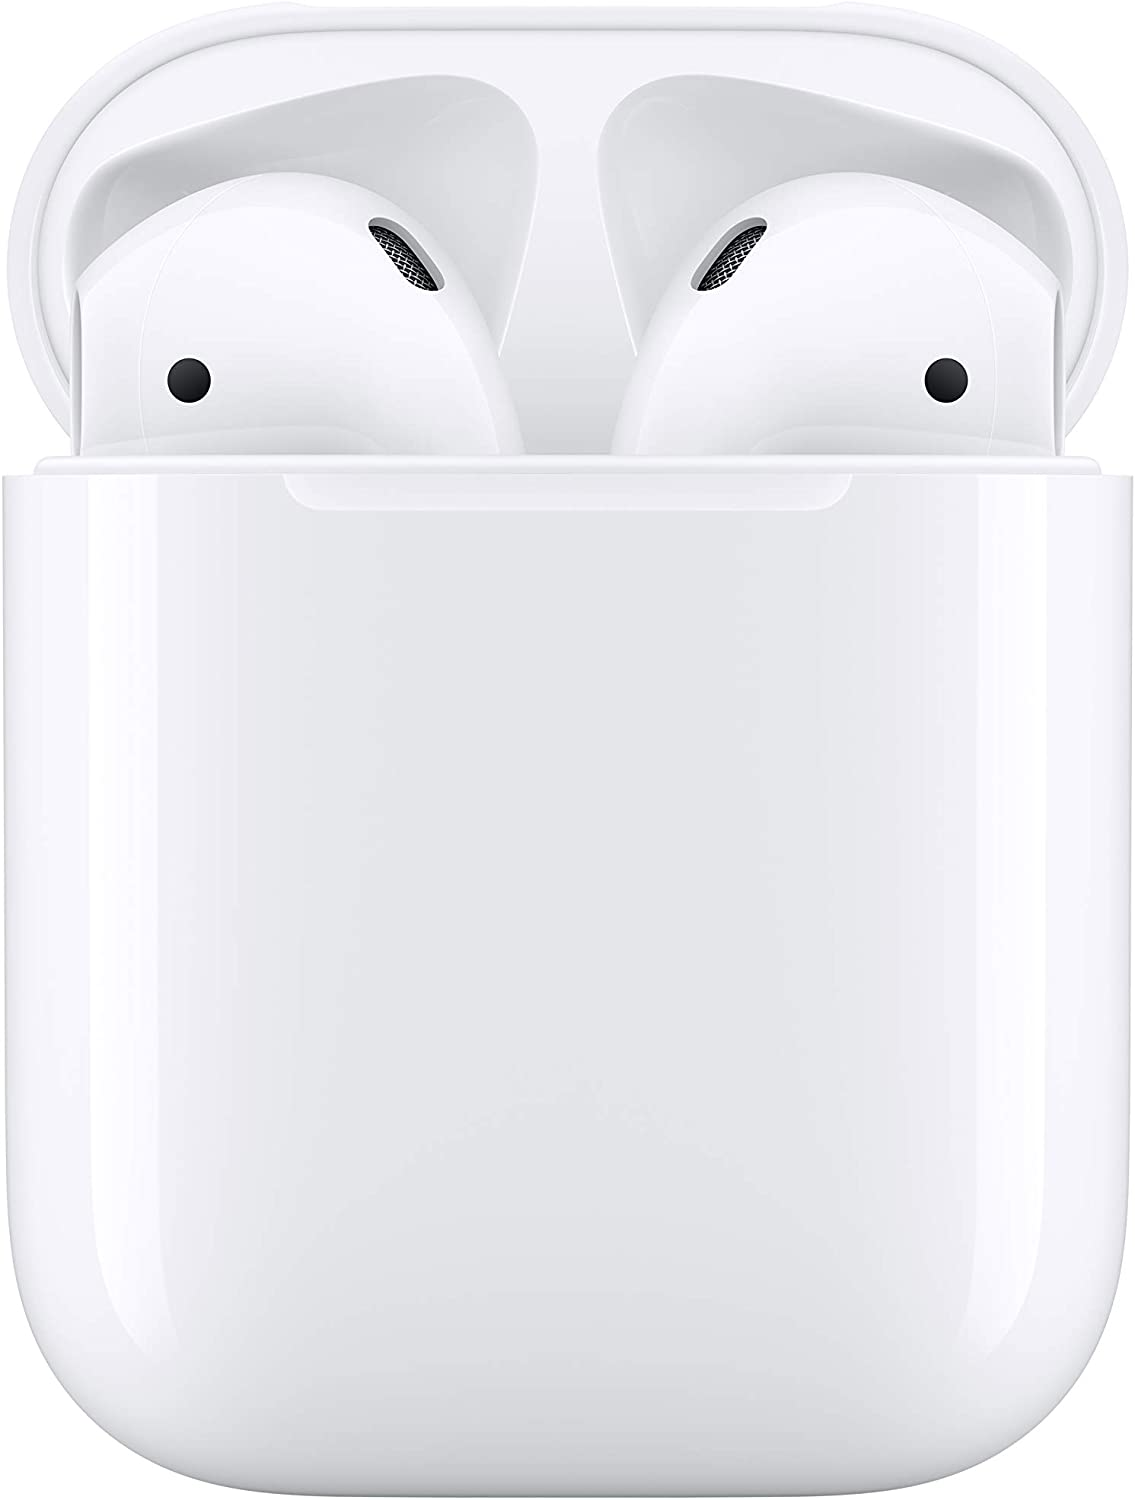 Apple AirPods 2nd Generation w/ Charging Case - (Refurbished)